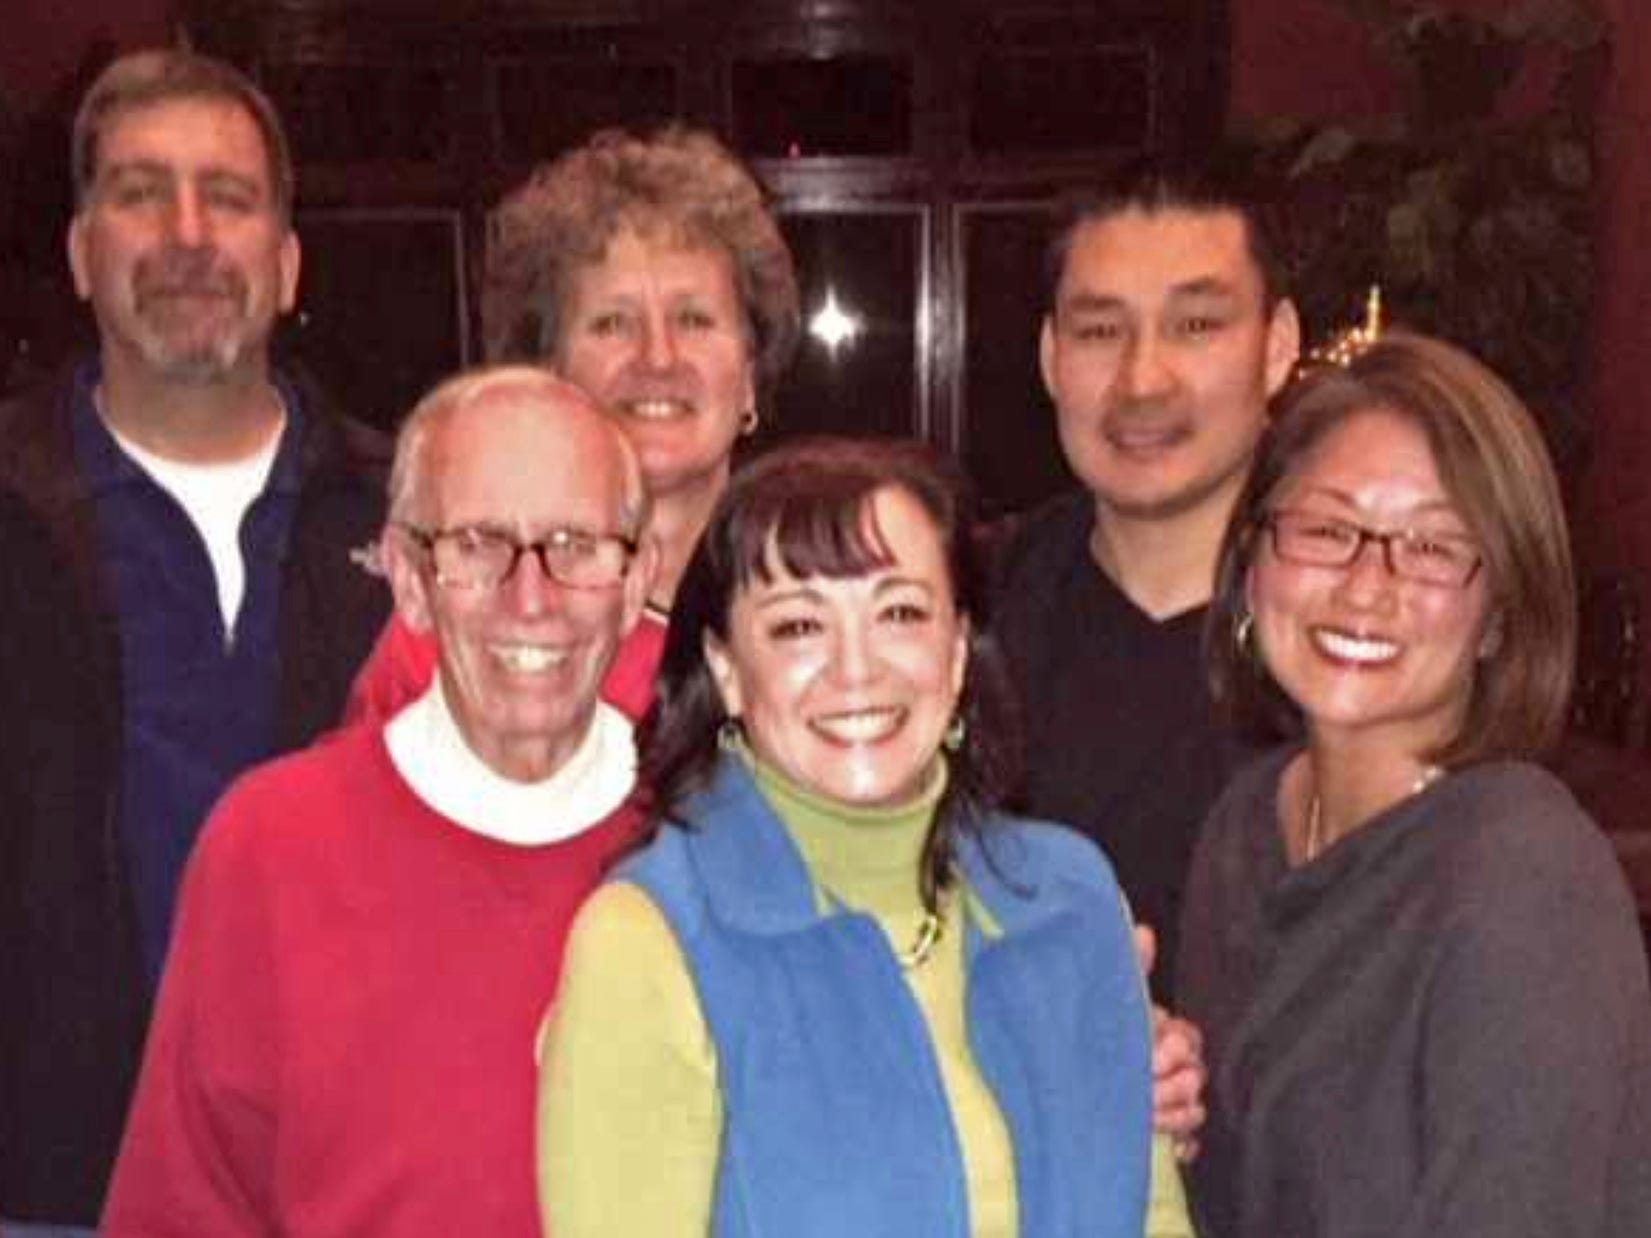 A family photo shows Tom Peters and his daughter Mary Jane Millehan in front, along with Mary Jane's husband, Ron, and three of Tom's adopted children, Terri, Gary and Karen.